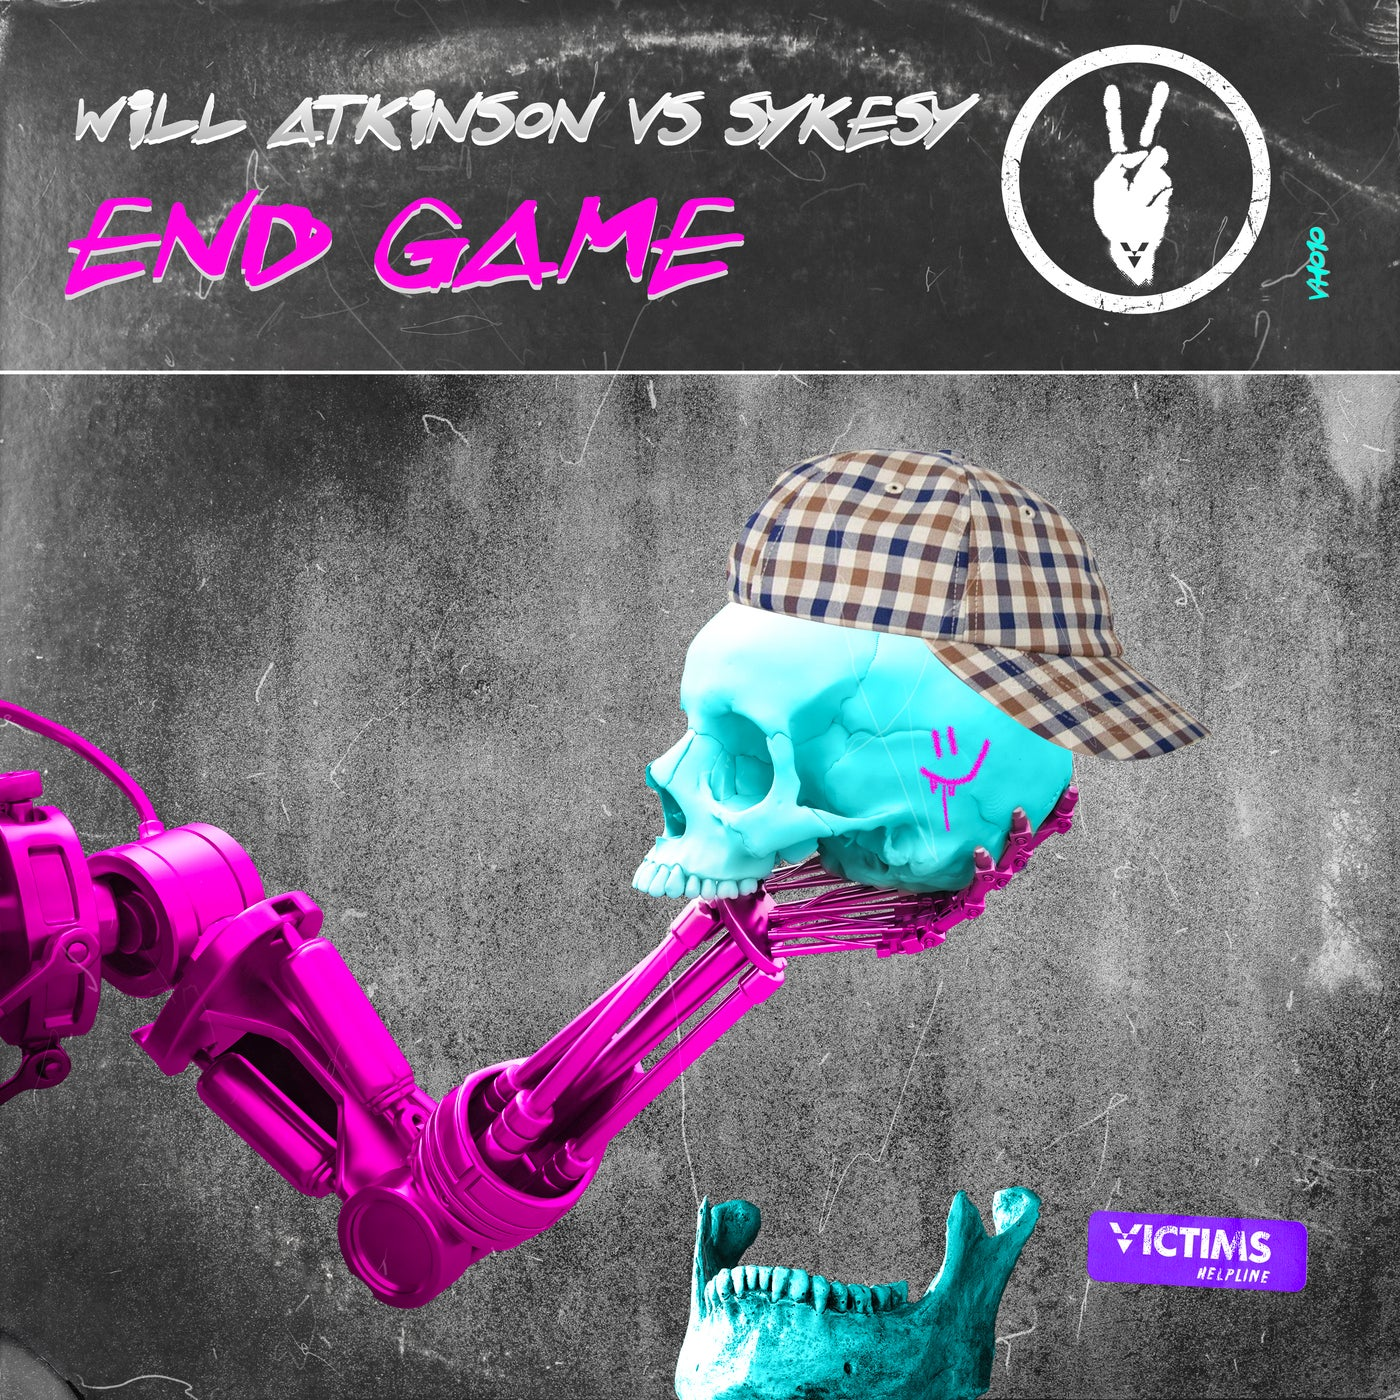 End Game (Extended Mix)